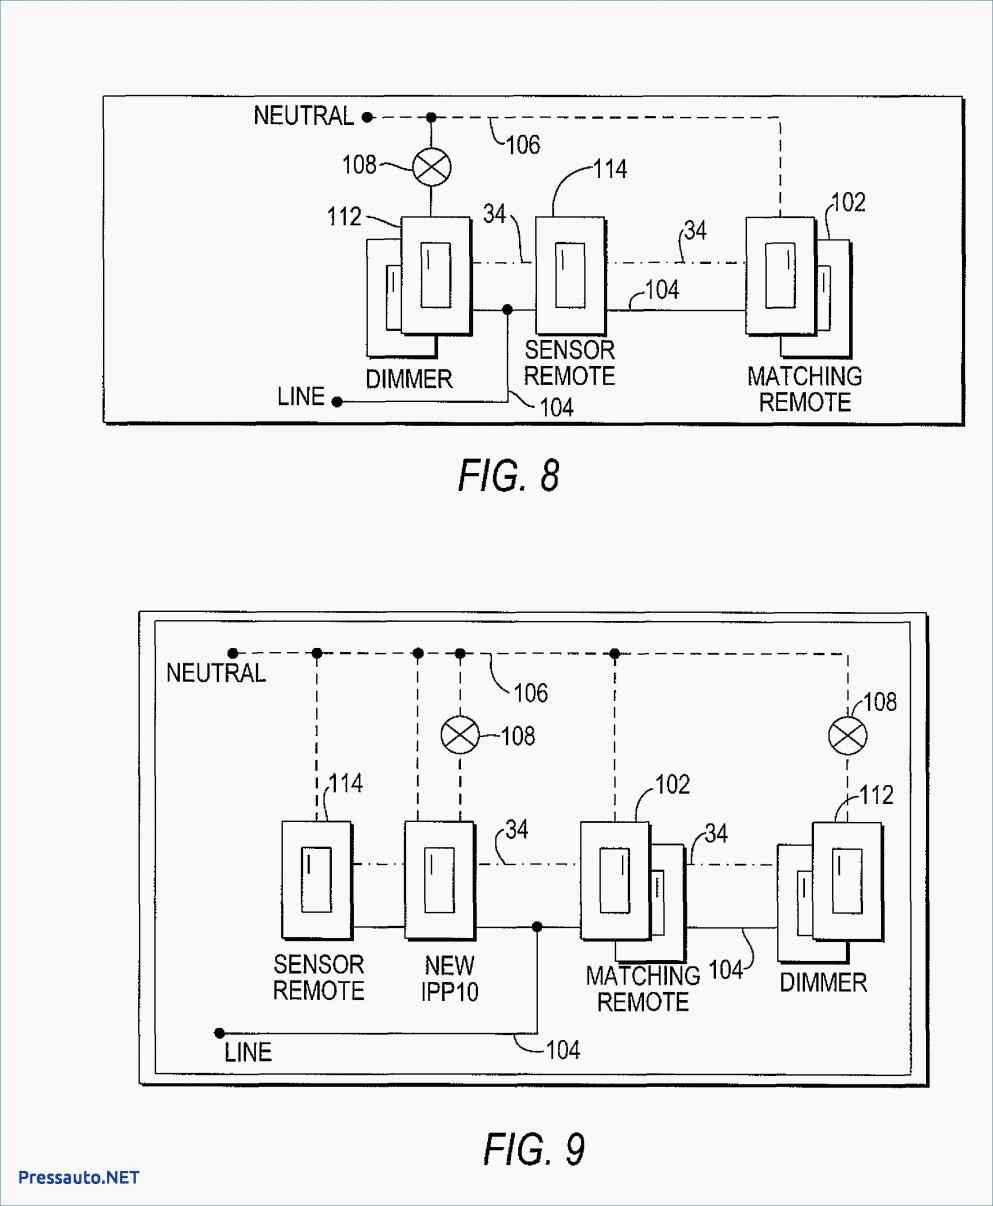 hight resolution of lutron way dimmer switch wiring diagram wiring diagram way switch beautiful lutron diva way dimmer wiring